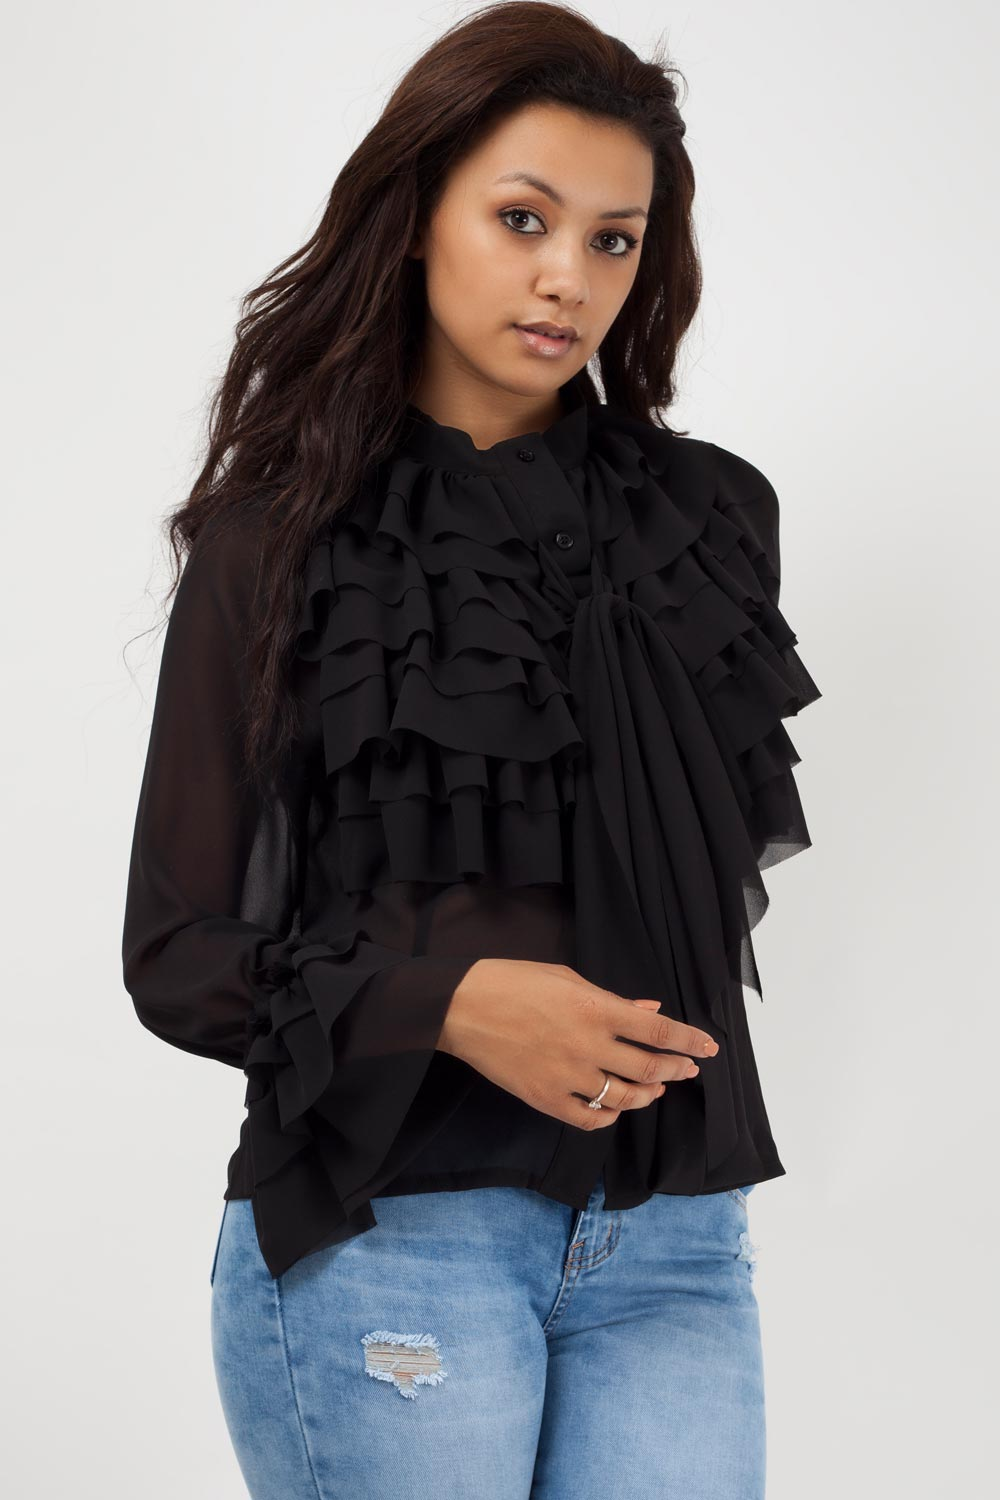 black ruffle top long sleeve uk styledup fashion